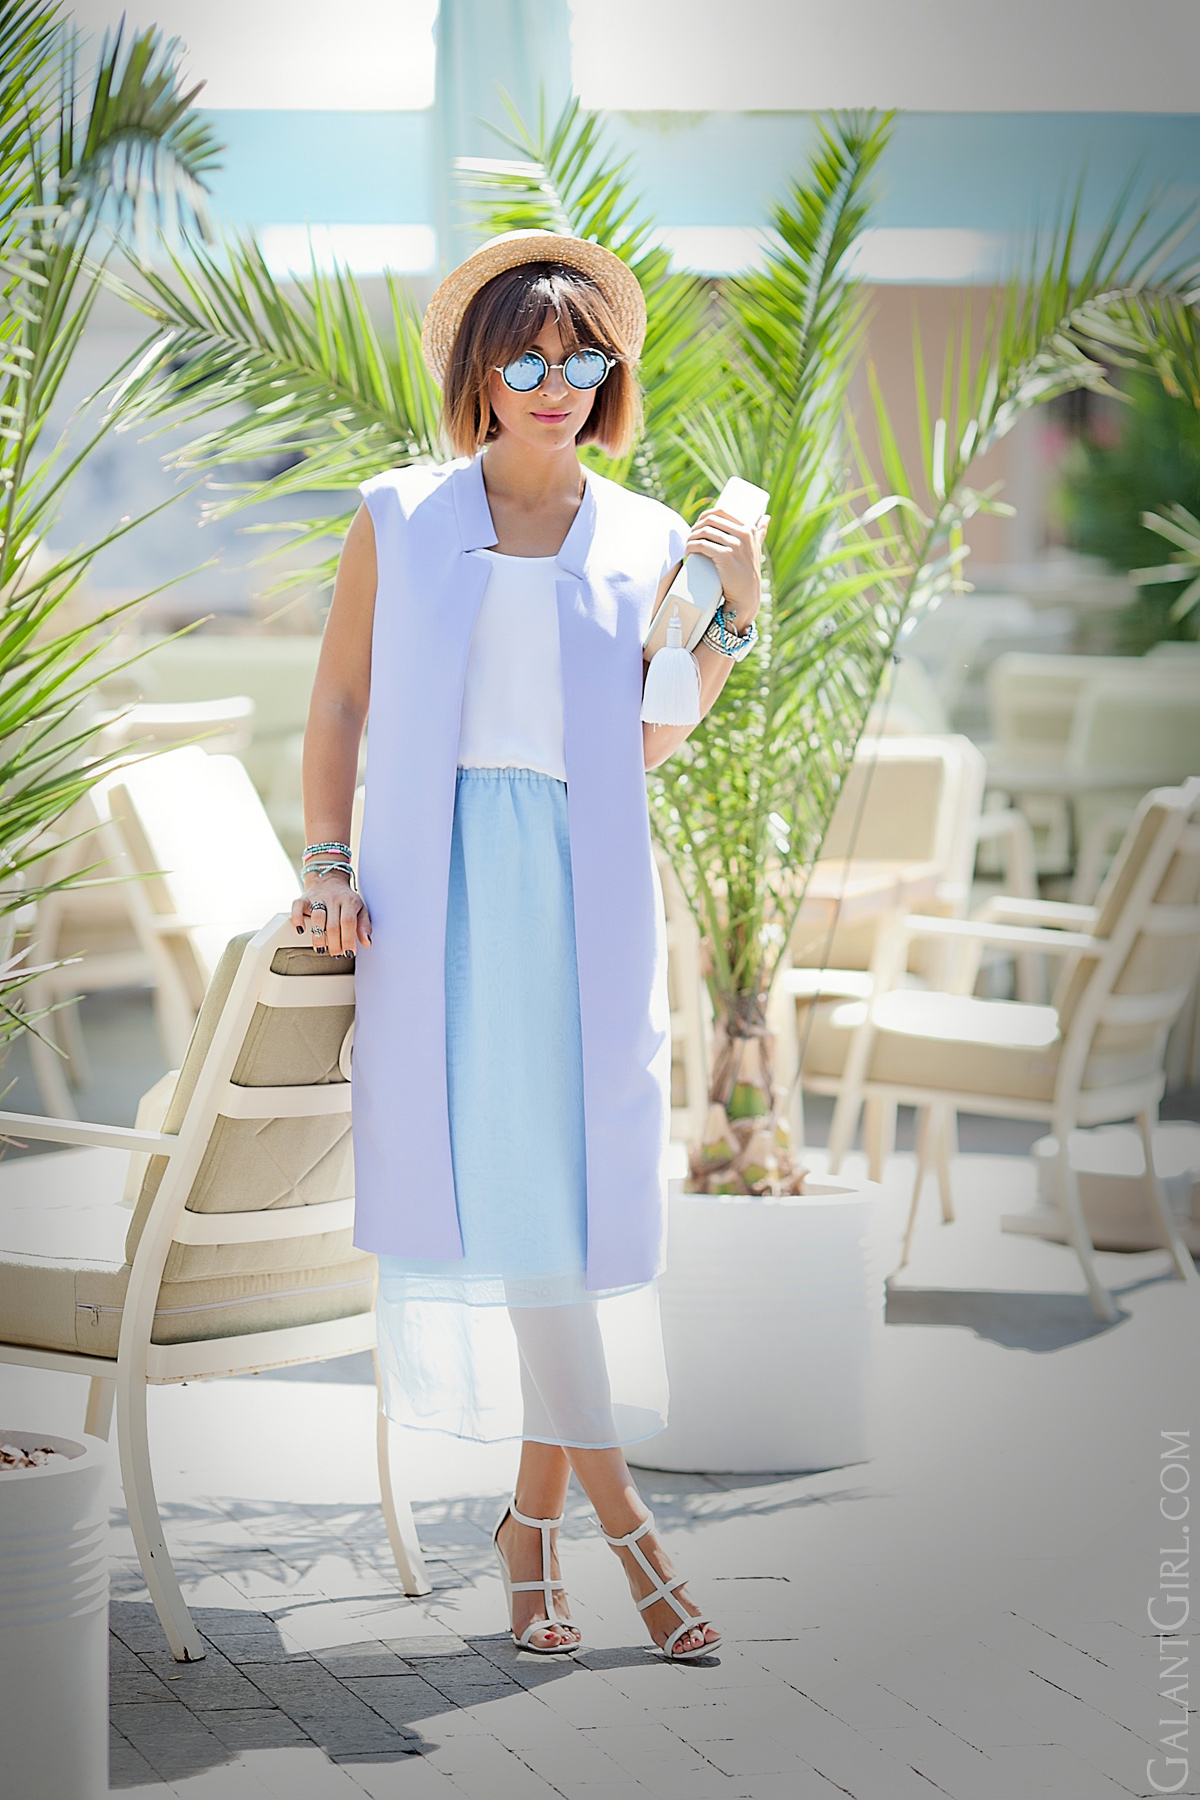 30s-styling-for-modern-life-fashion-blogger-ellena-galant